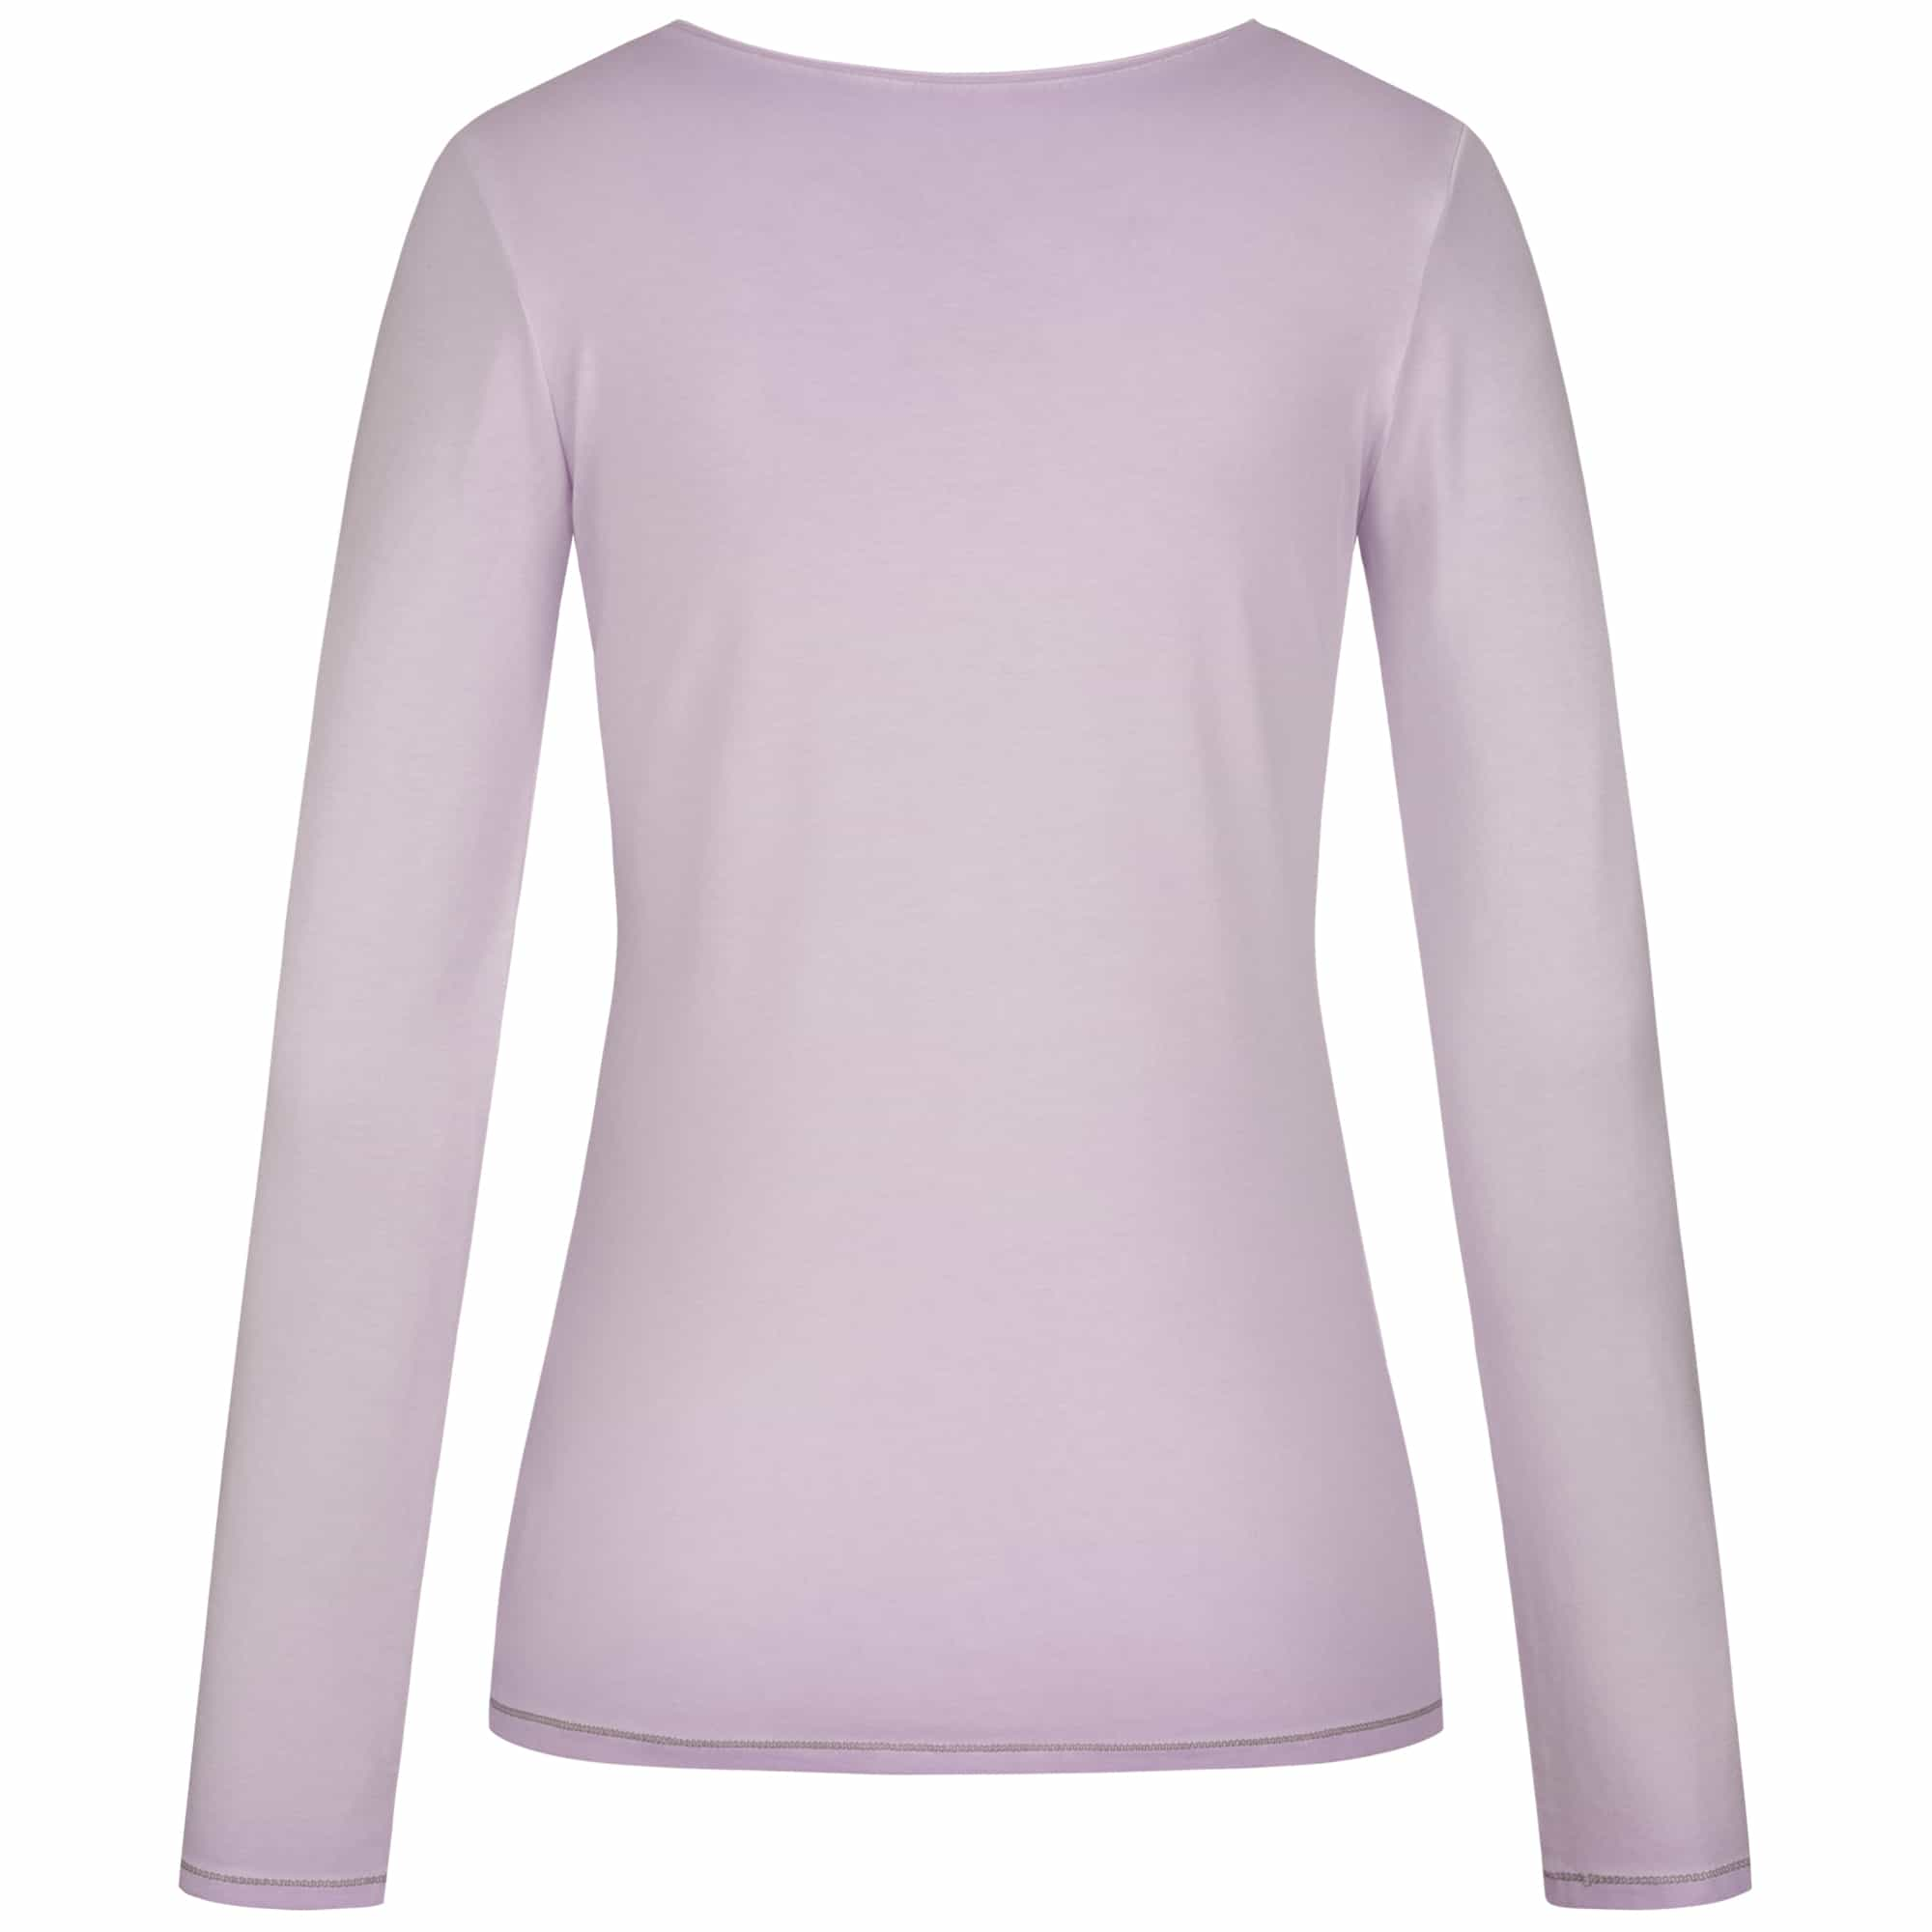 "Yoga-Shirt ""U"", pale violet - Pures superweiches Langarmshirt"